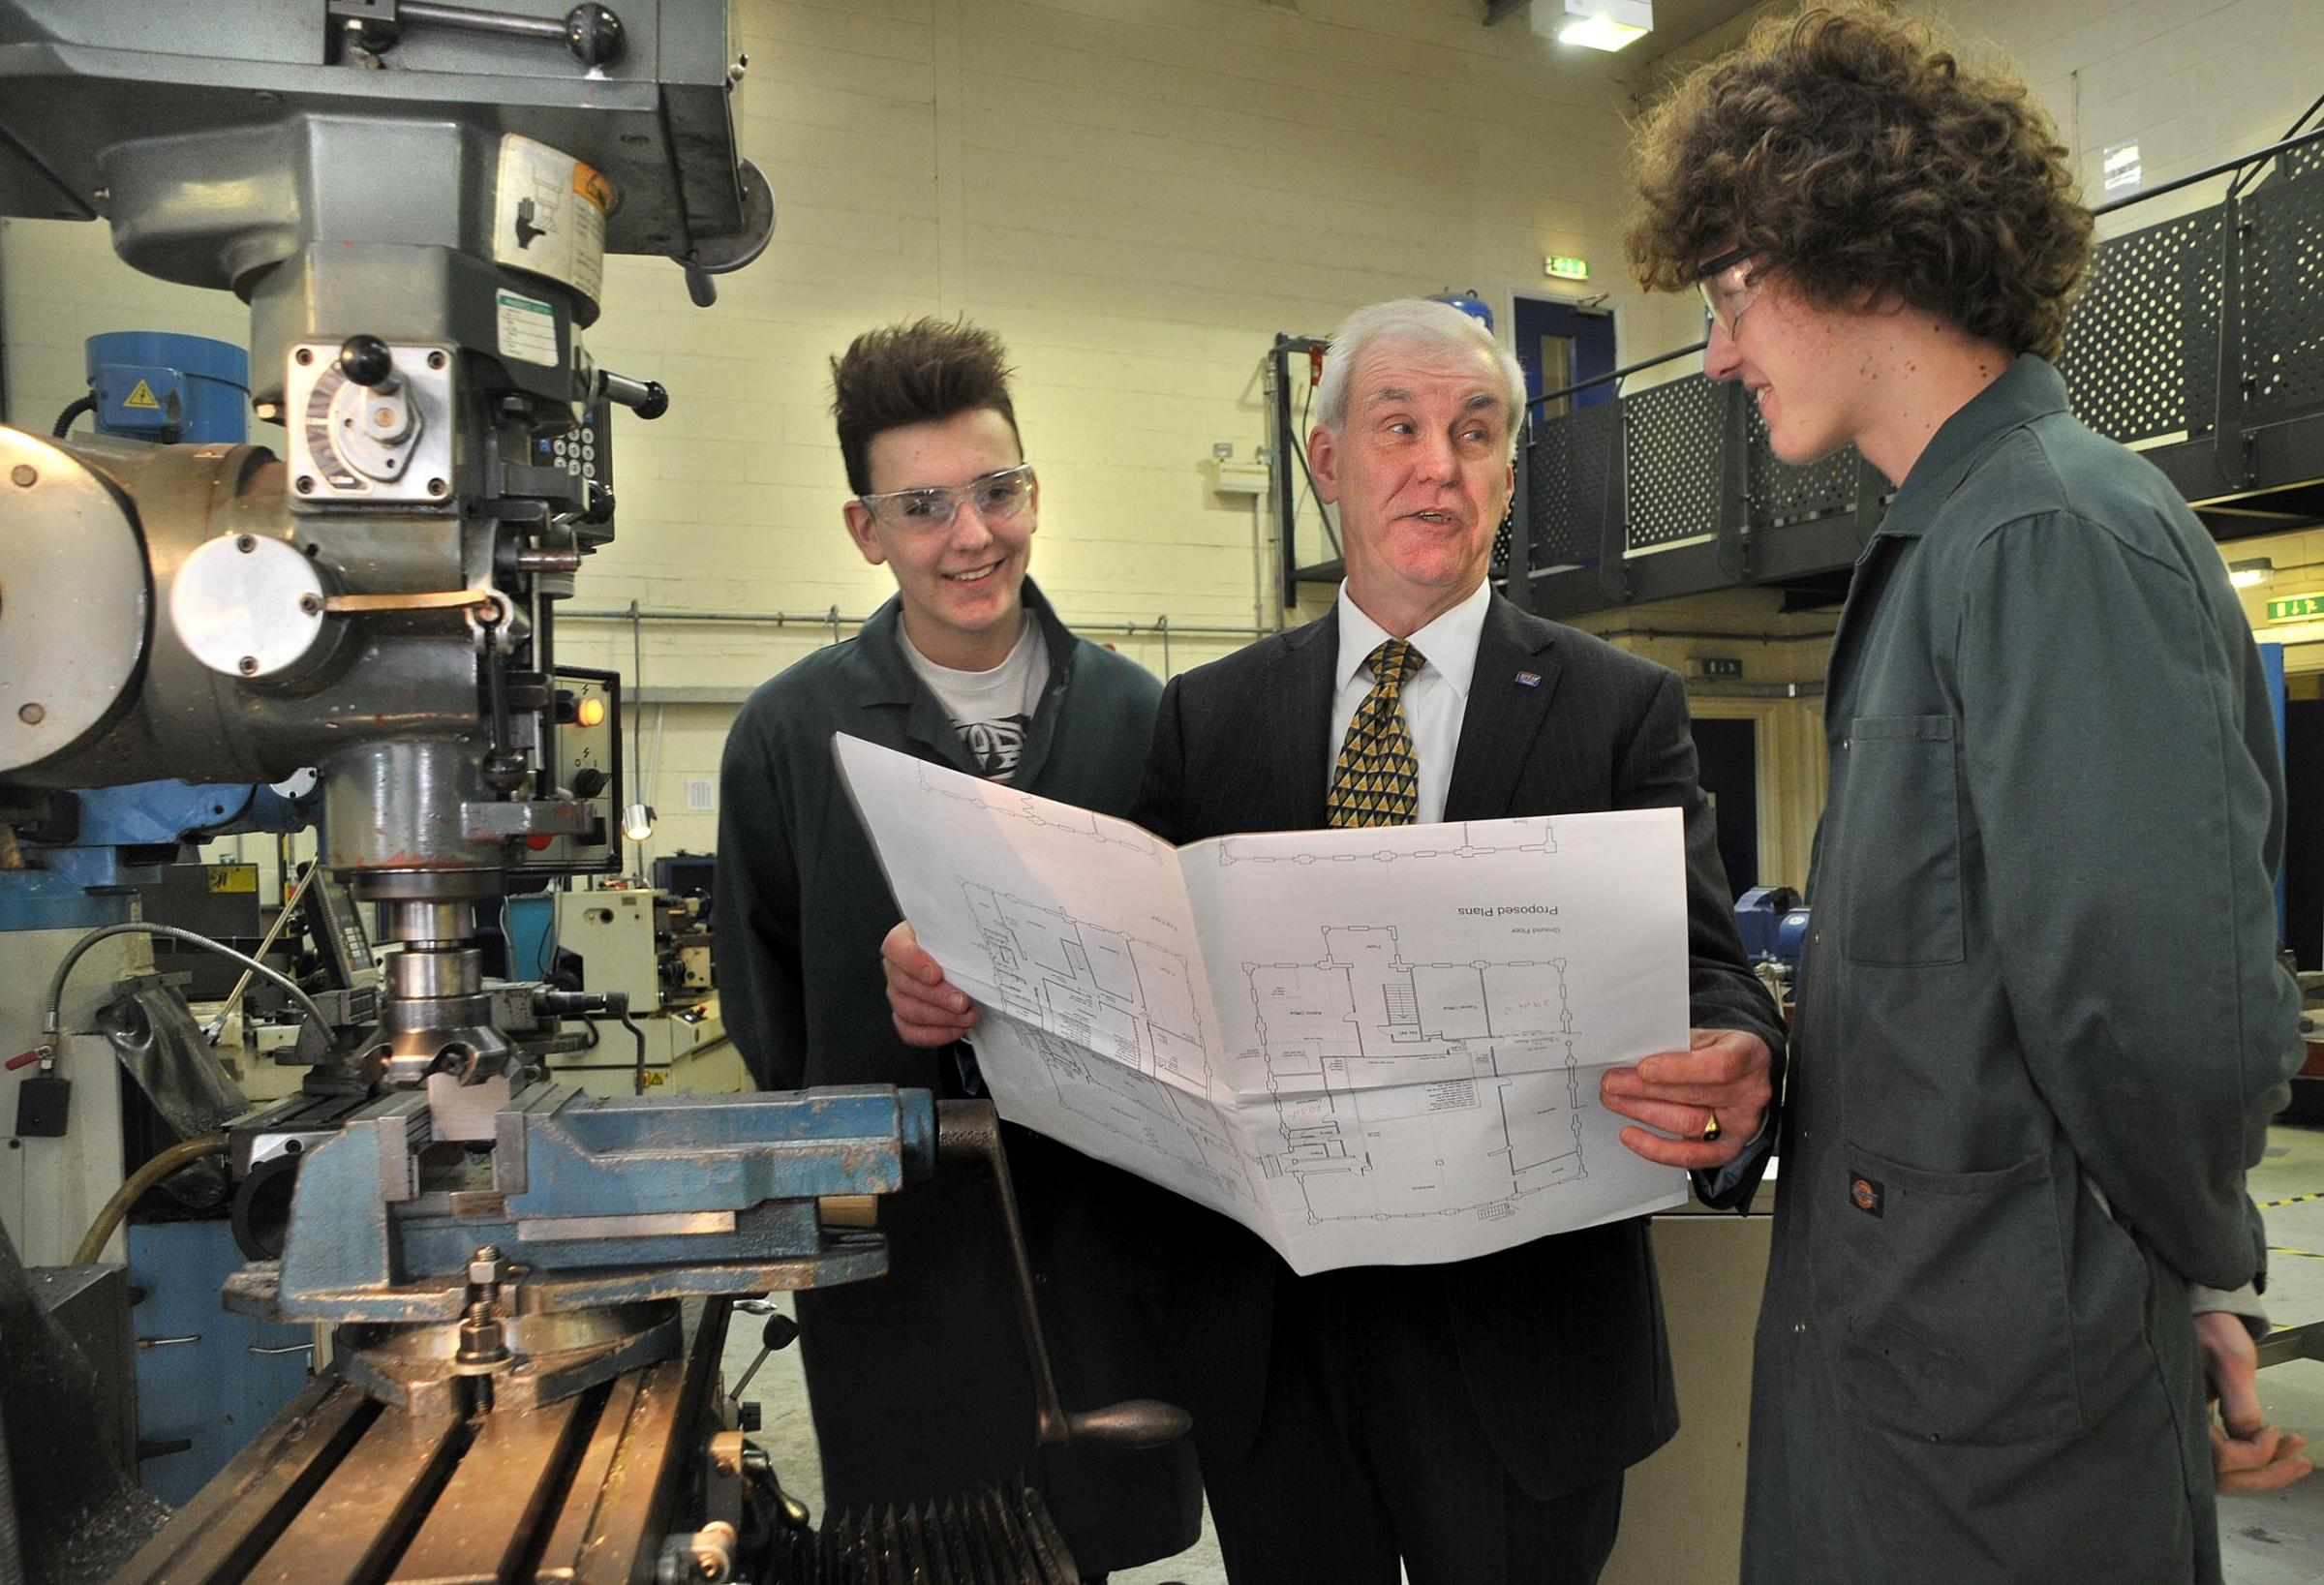 John Brockett, of Derwent Training, shows Dale Power Solutions trainees Alistair Potter, left, and Will Wilkinson, right, about its expansion plans